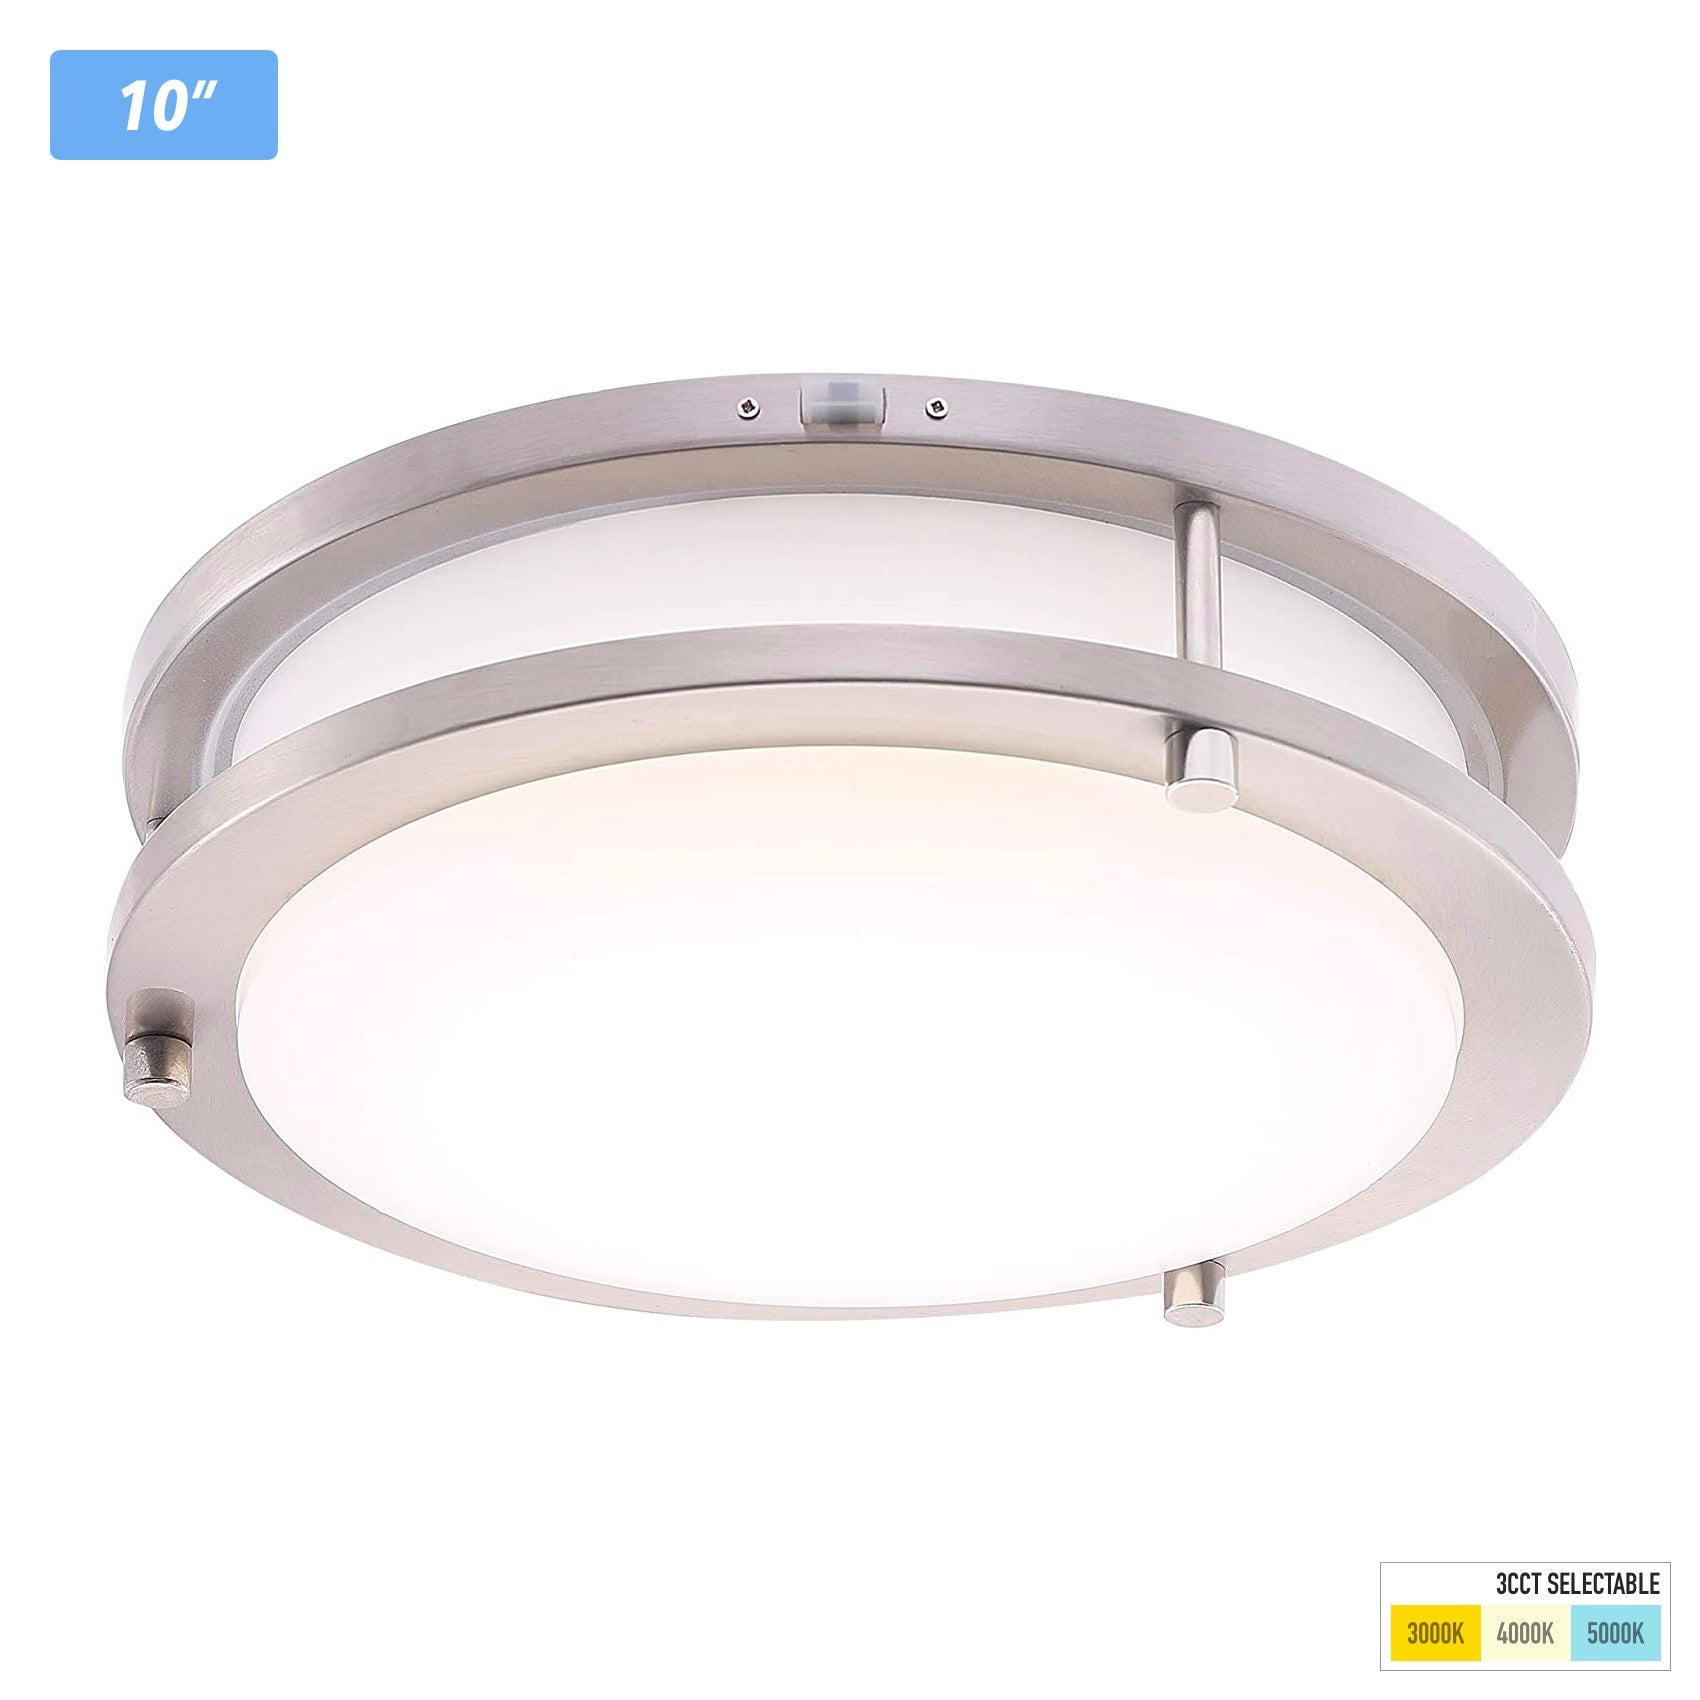 LED Flush Mount Ceiling Light,10 inch,120V 17W Dimmable 1050lm,3000K/4000K/5000K Adjustable,CRI 90+, Brushed Nickel Lighting Fixture for Kitchen,Hallway,Bathroom,Stairwell